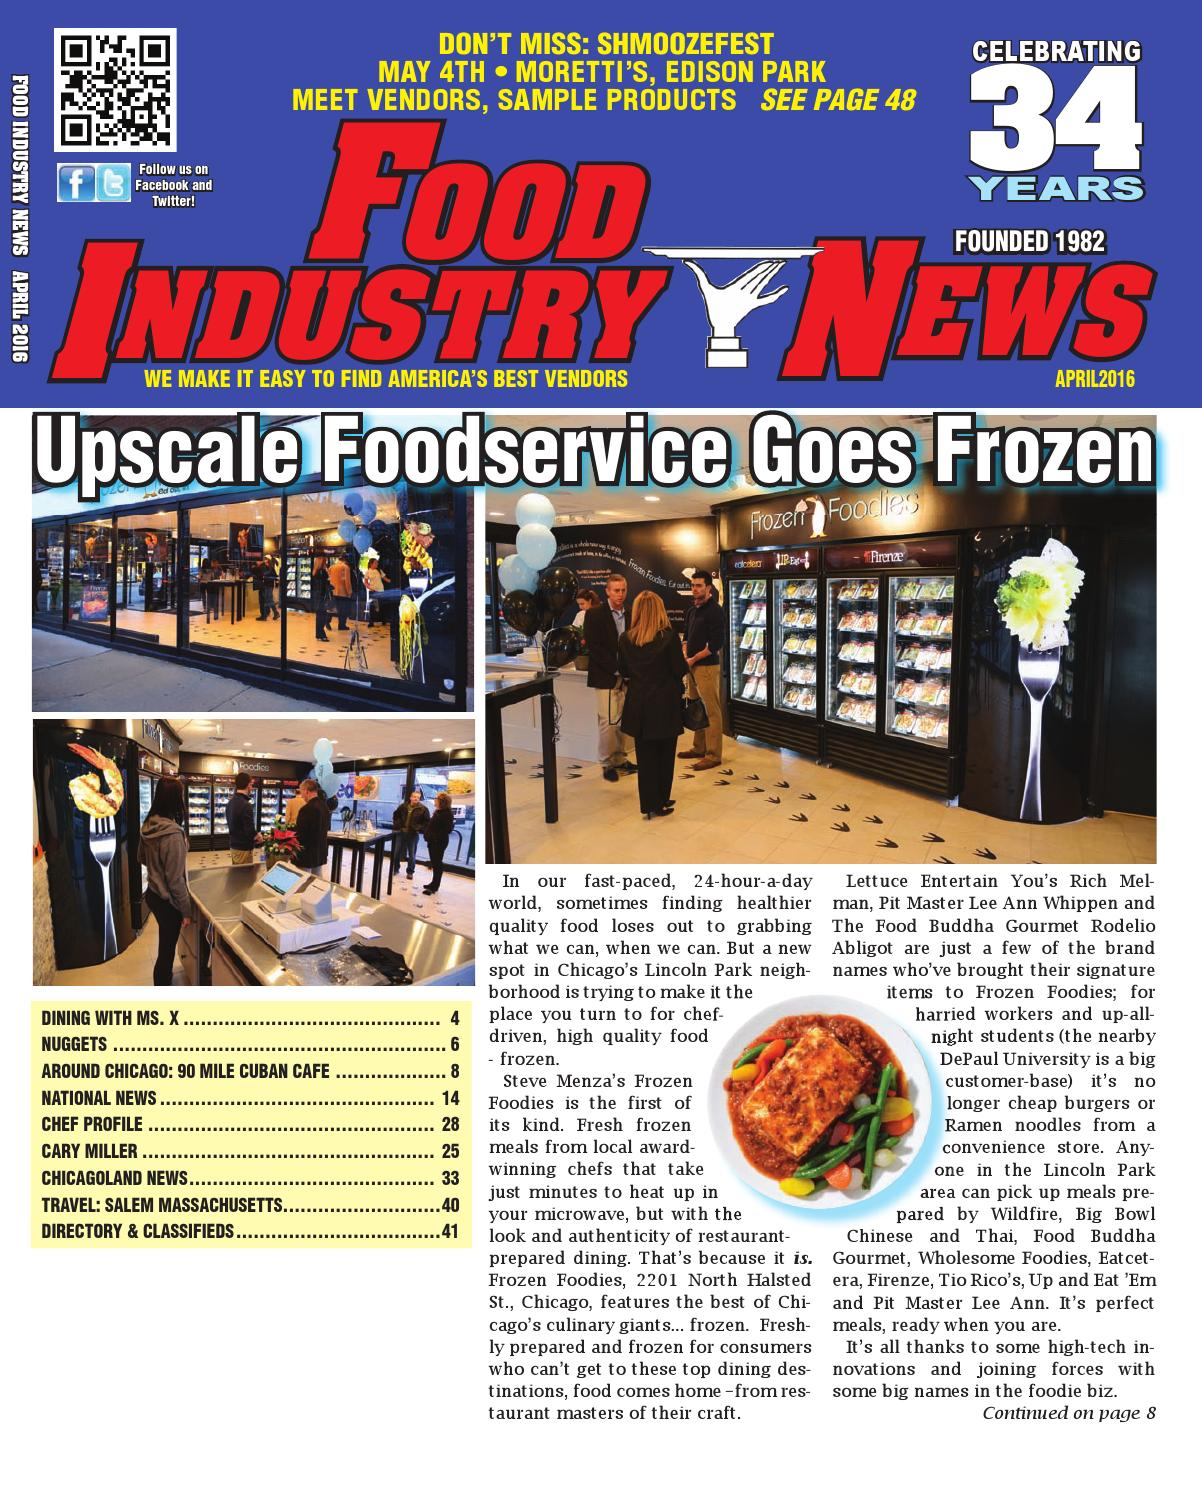 Lincoln Foodservice Products: Food Industry News April, 2016 Web Edition By